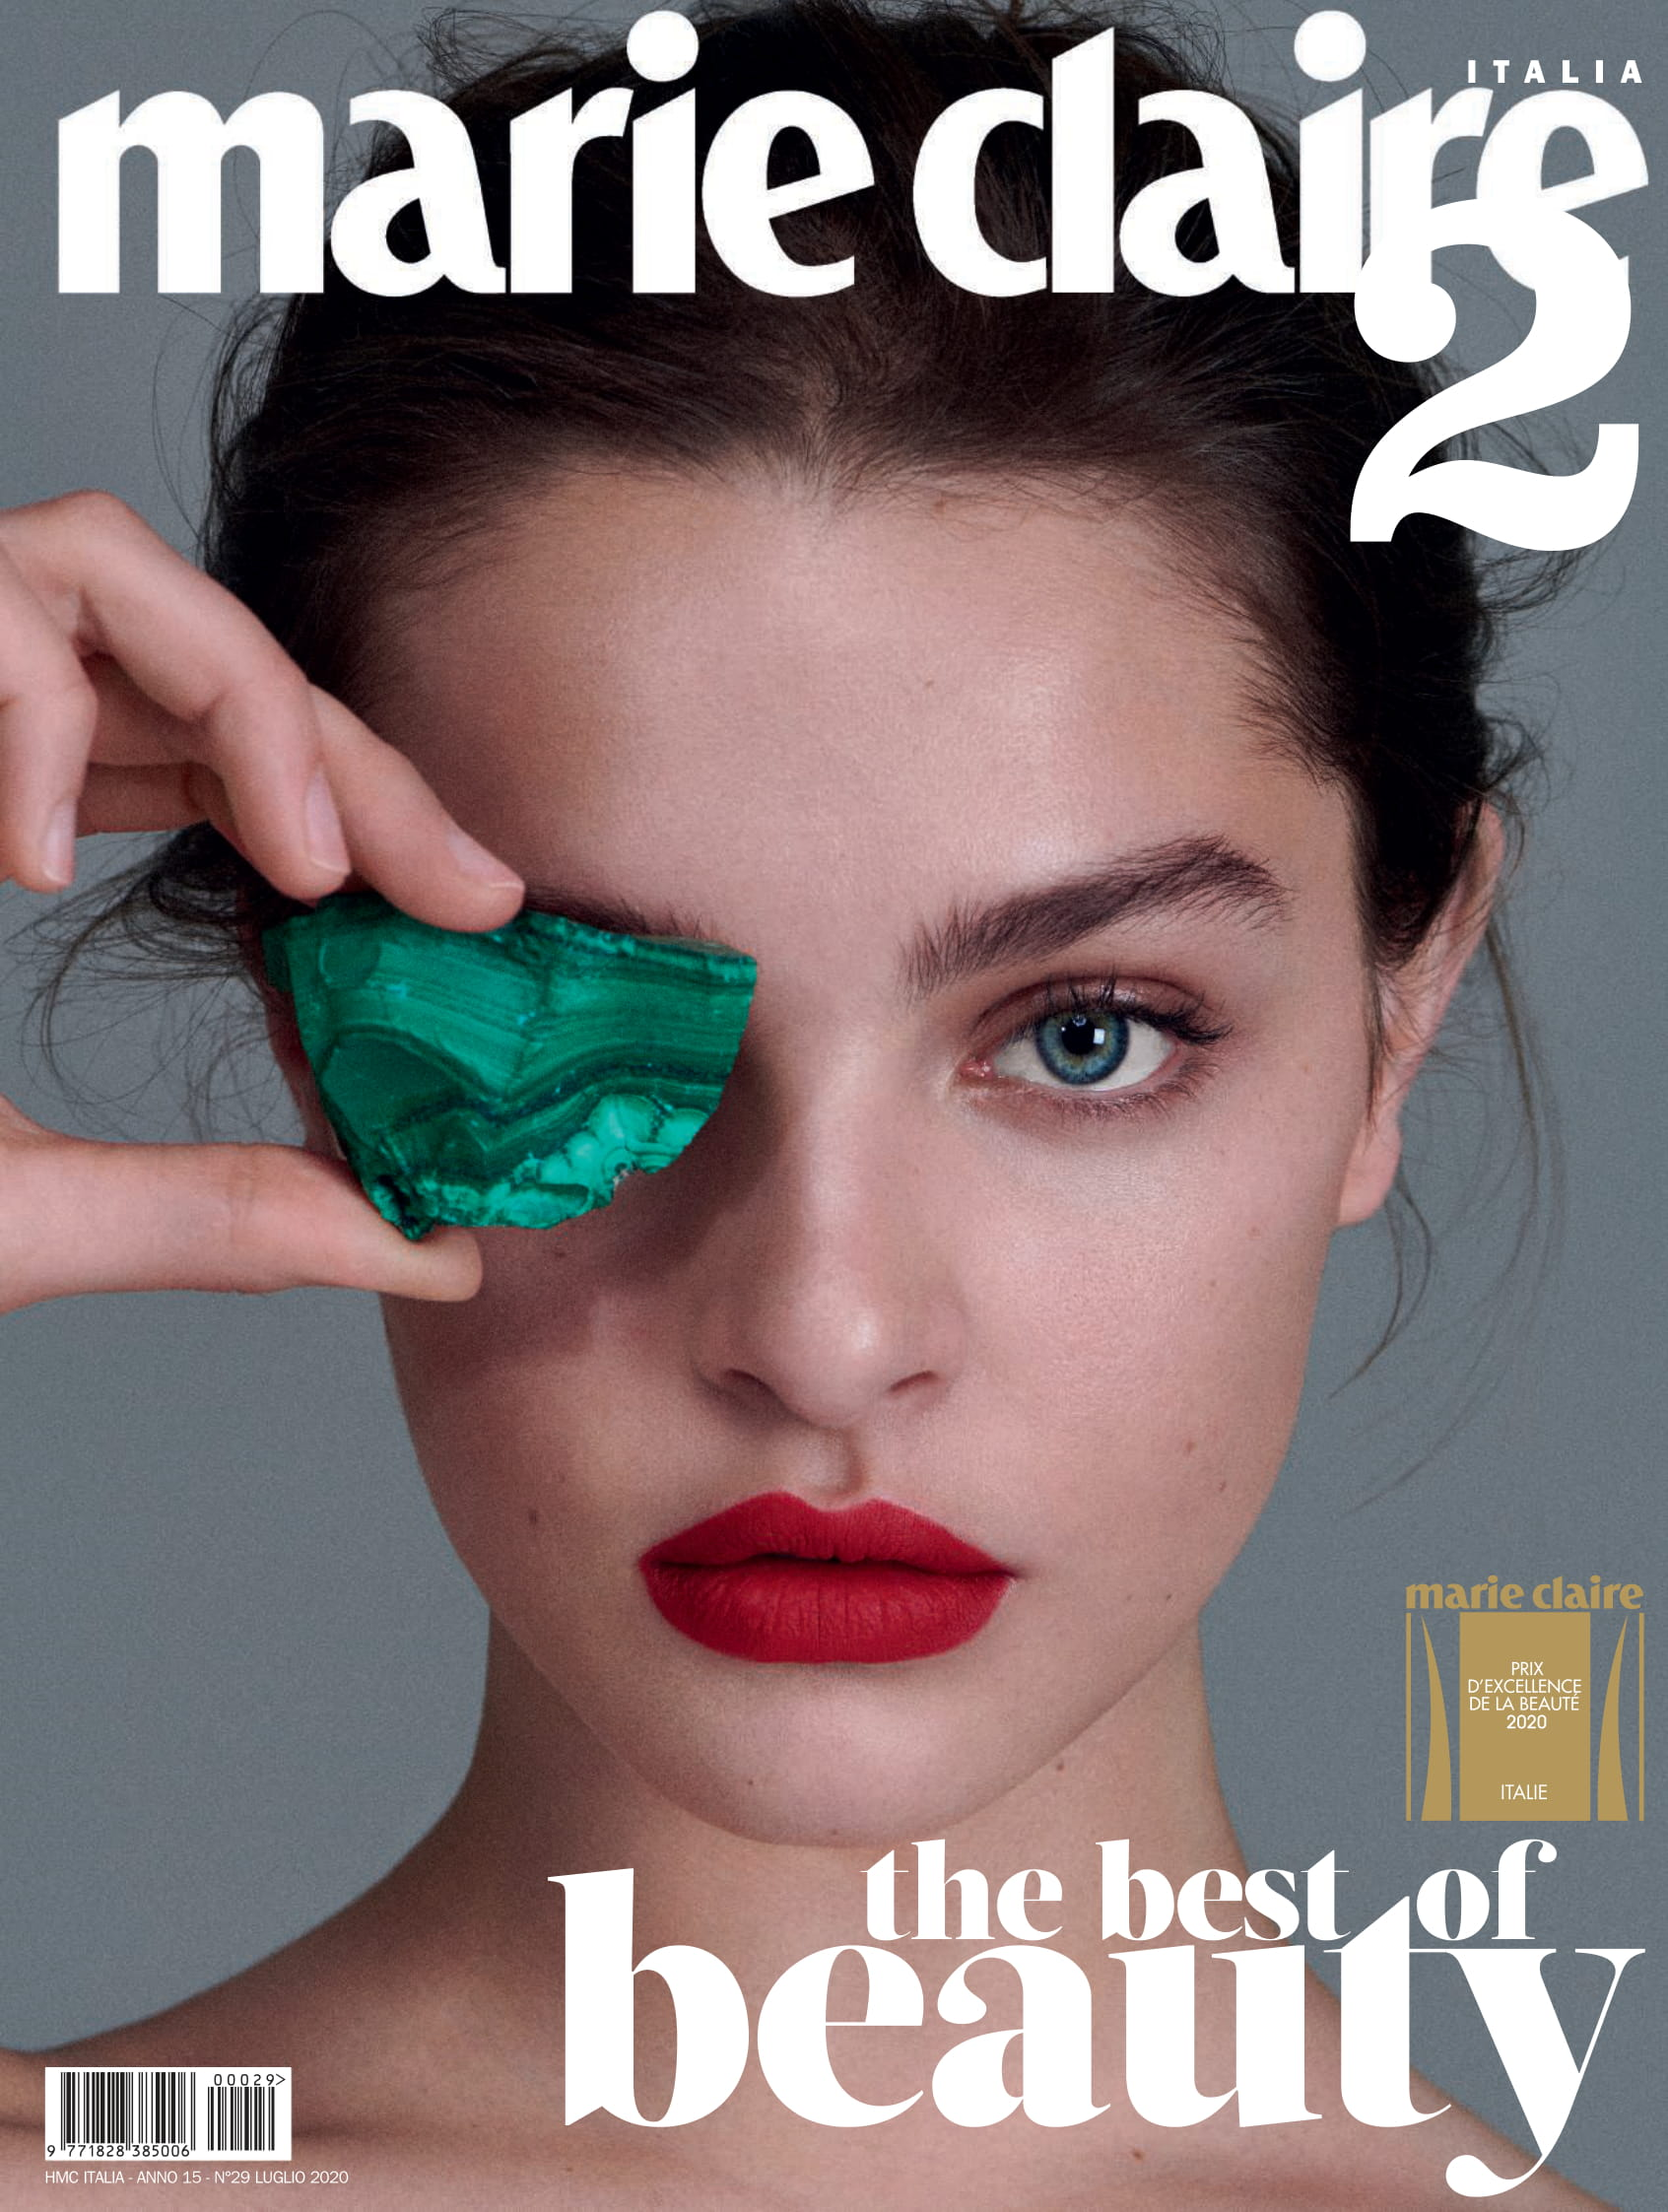 MARIE CLAIRE ITALIA - MC2 THE BEST OF BEAUTY July 2020